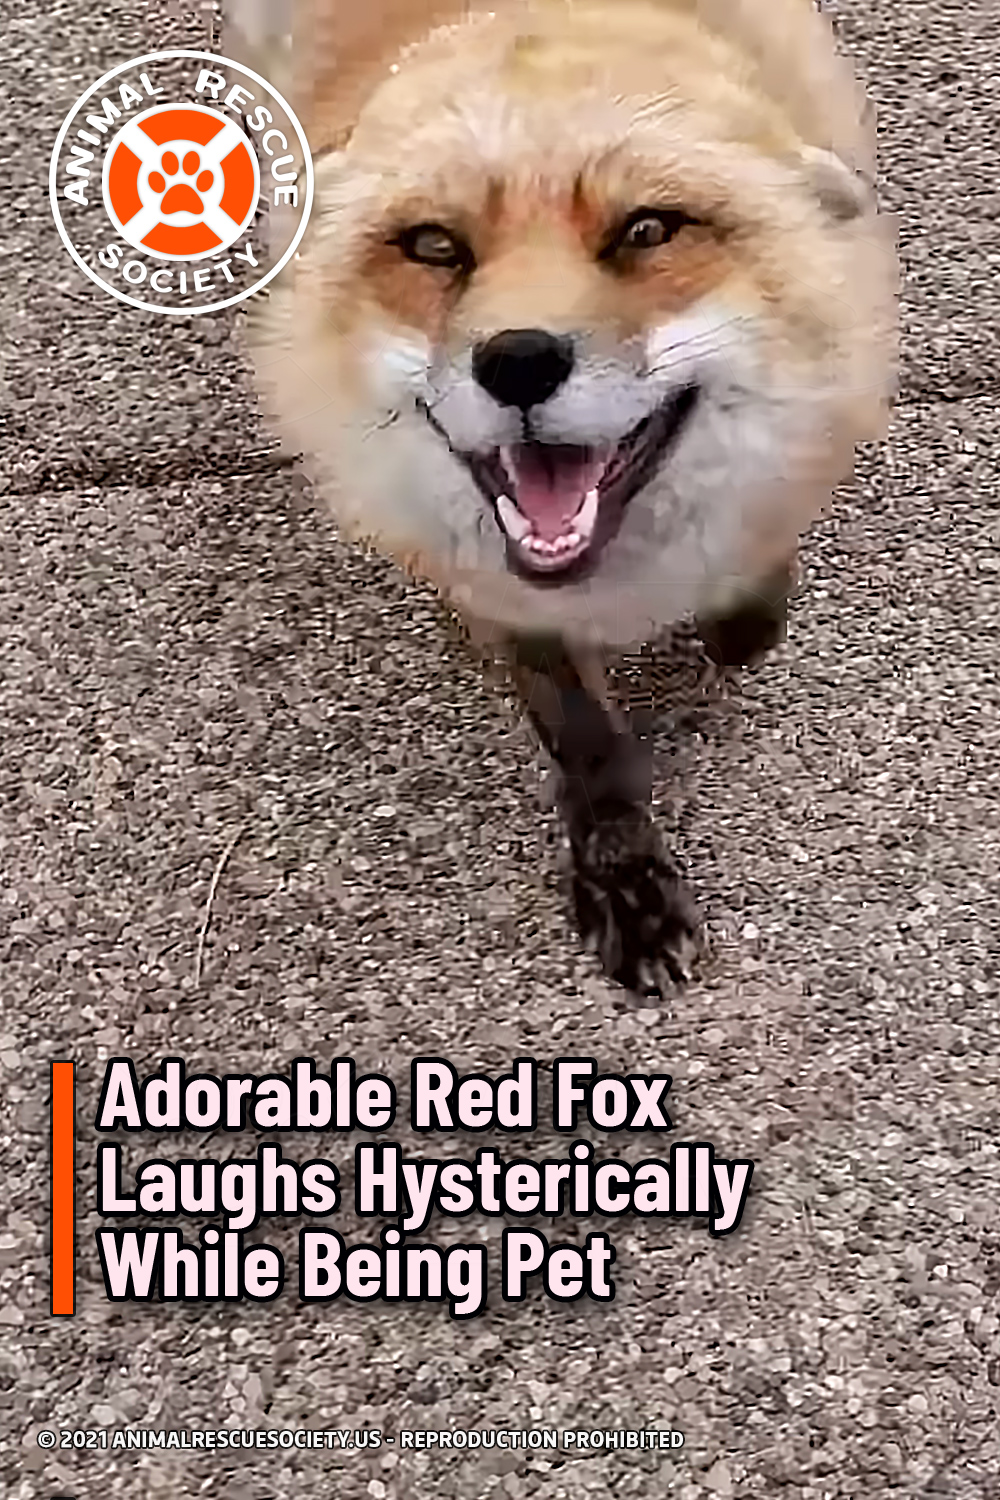 Adorable Red Fox Laughs Hysterically While Being Pet